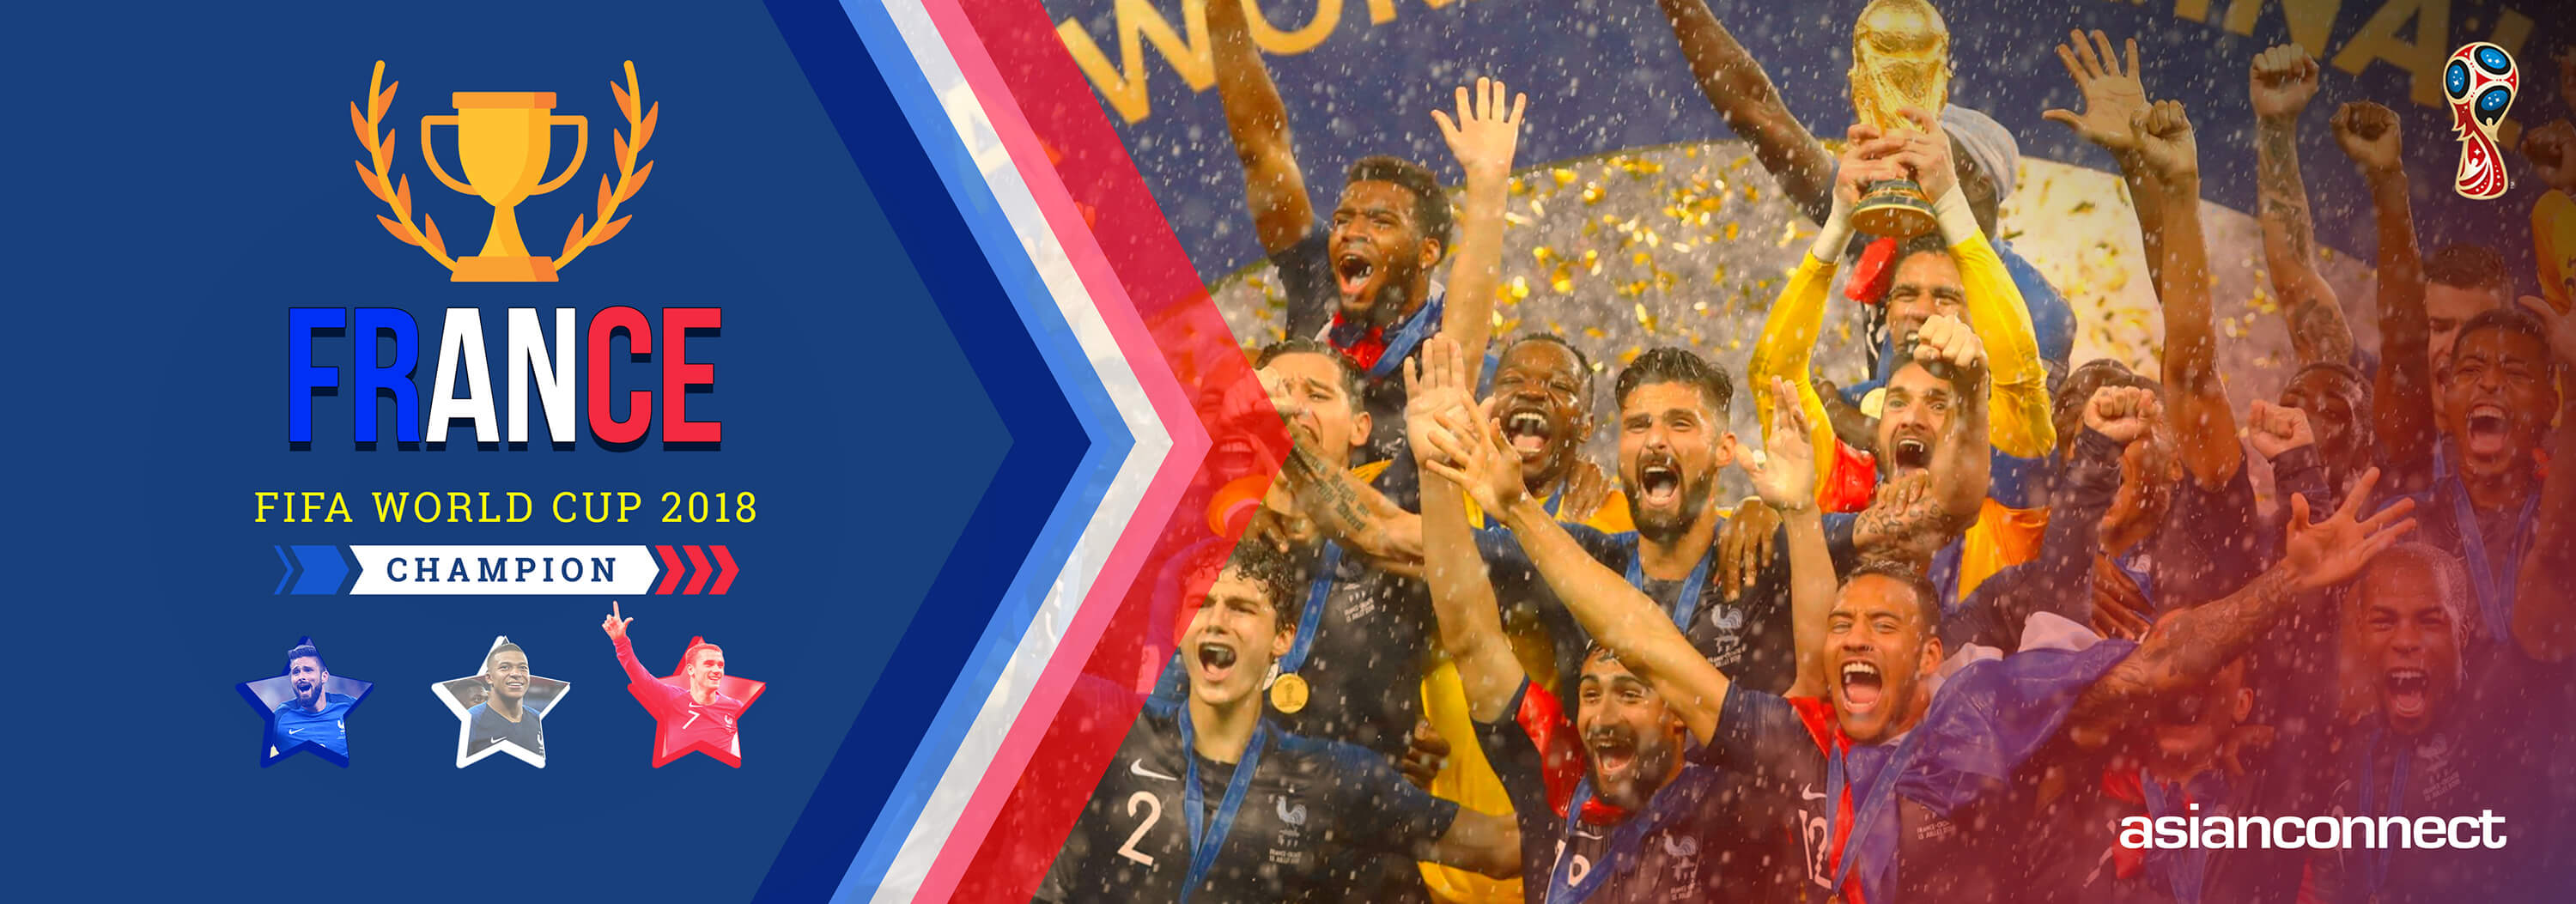 World Cup 2018 Champion France